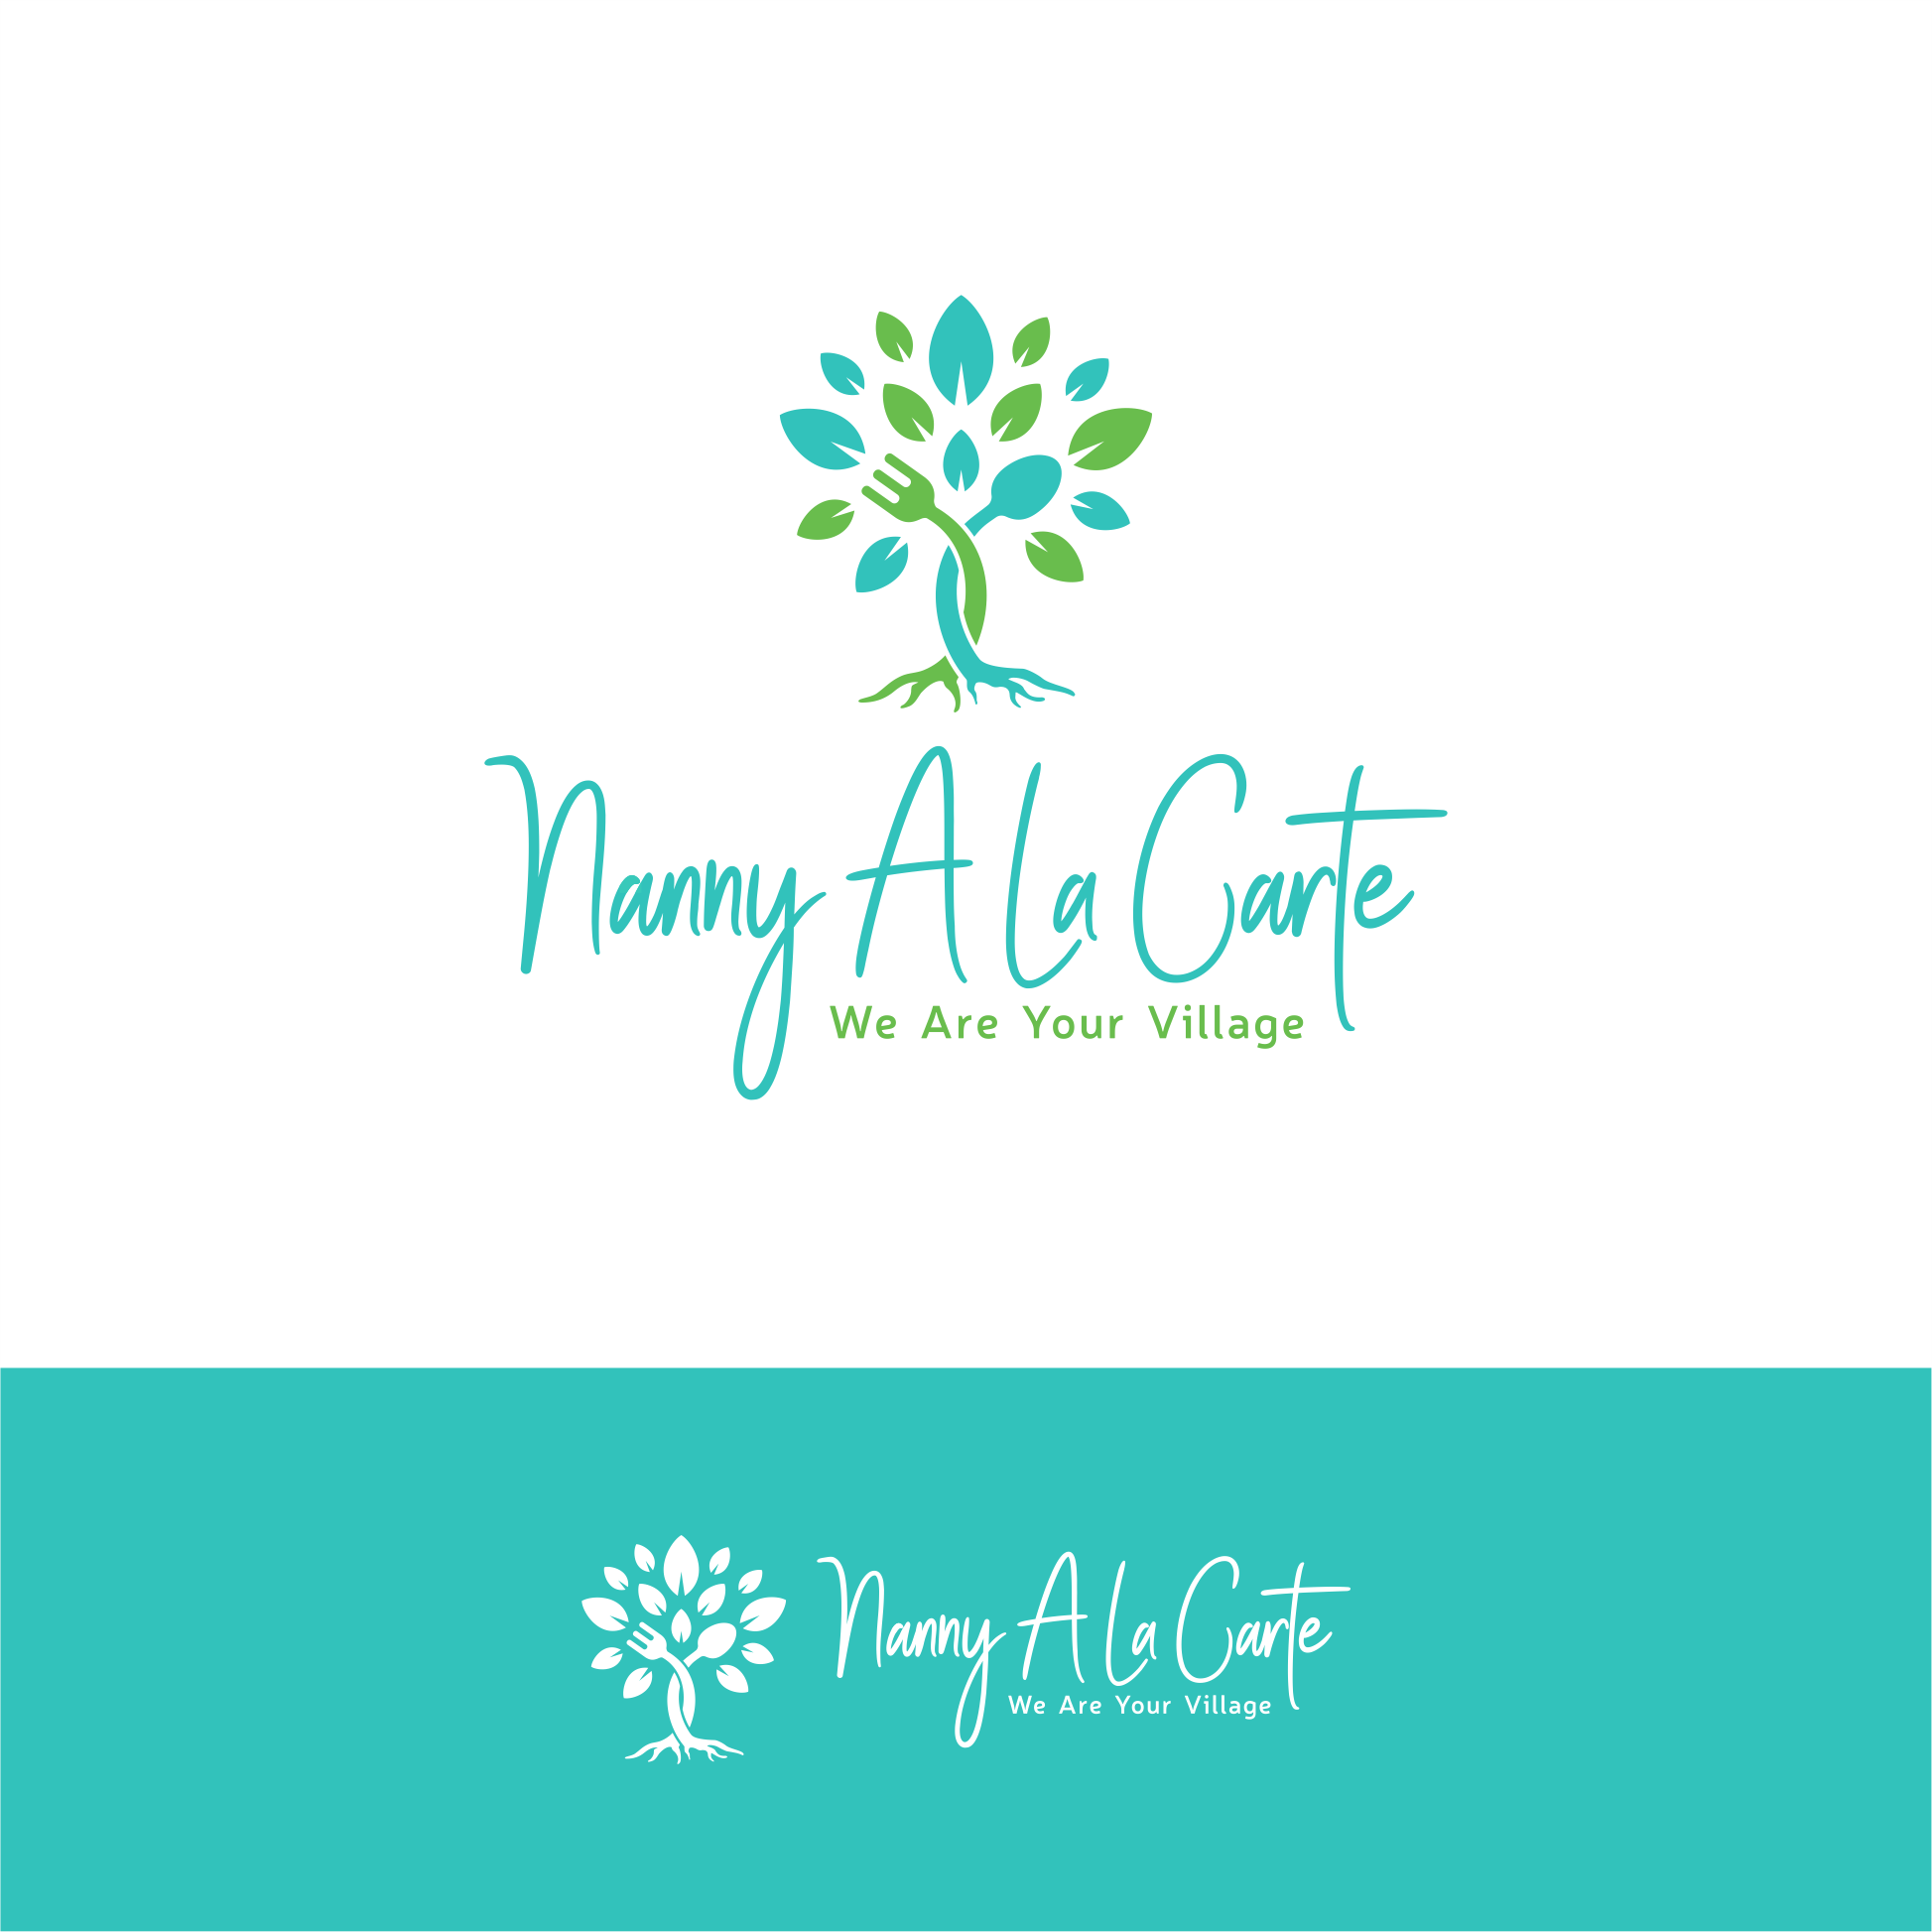 Create a cool logo for a one stop shop family support business